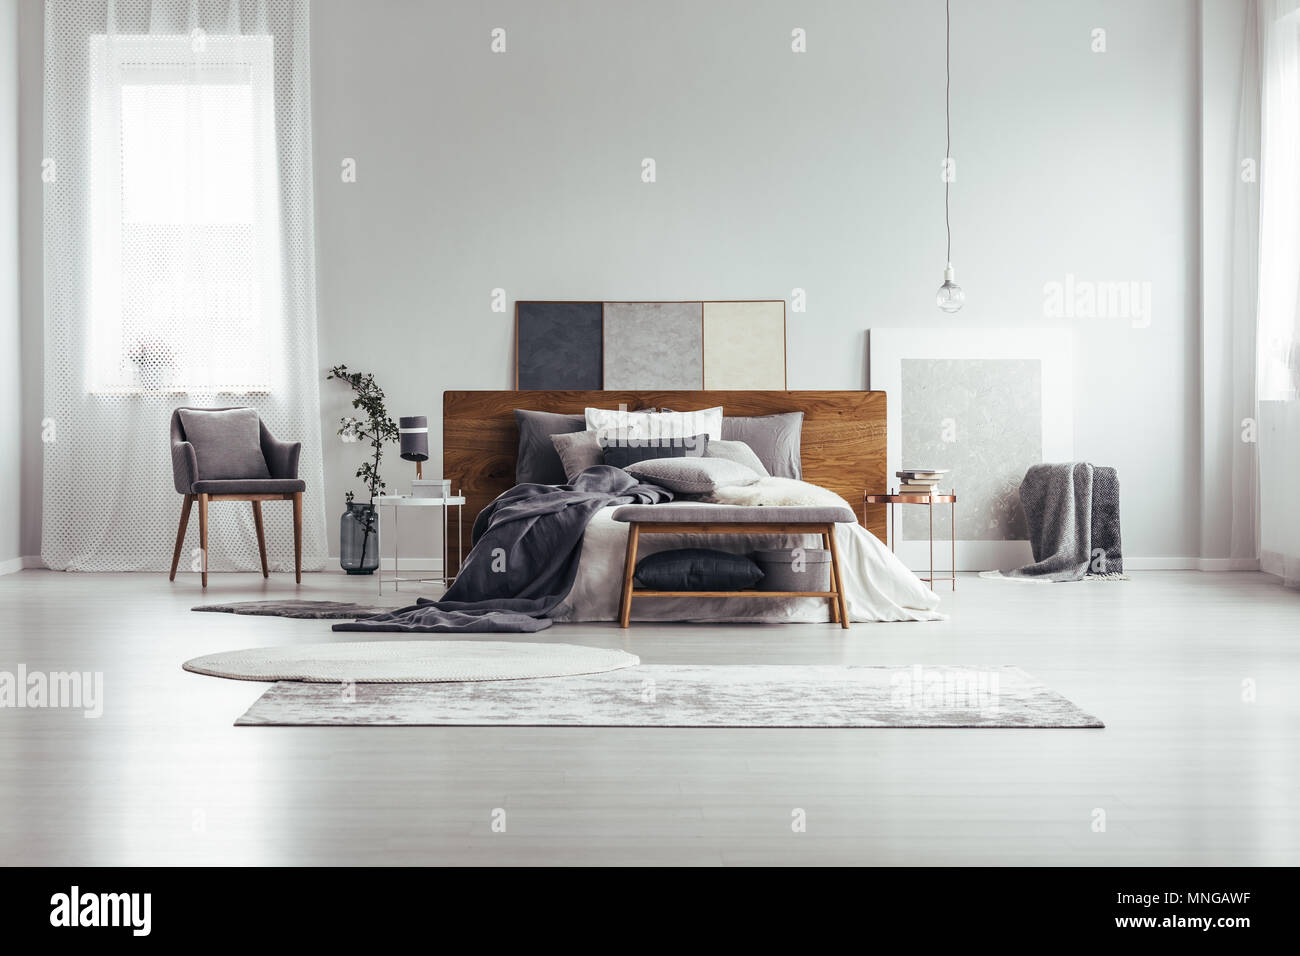 Marvelous Wooden Bench And Grey Chair Near King Size Bed Against White Spiritservingveterans Wood Chair Design Ideas Spiritservingveteransorg